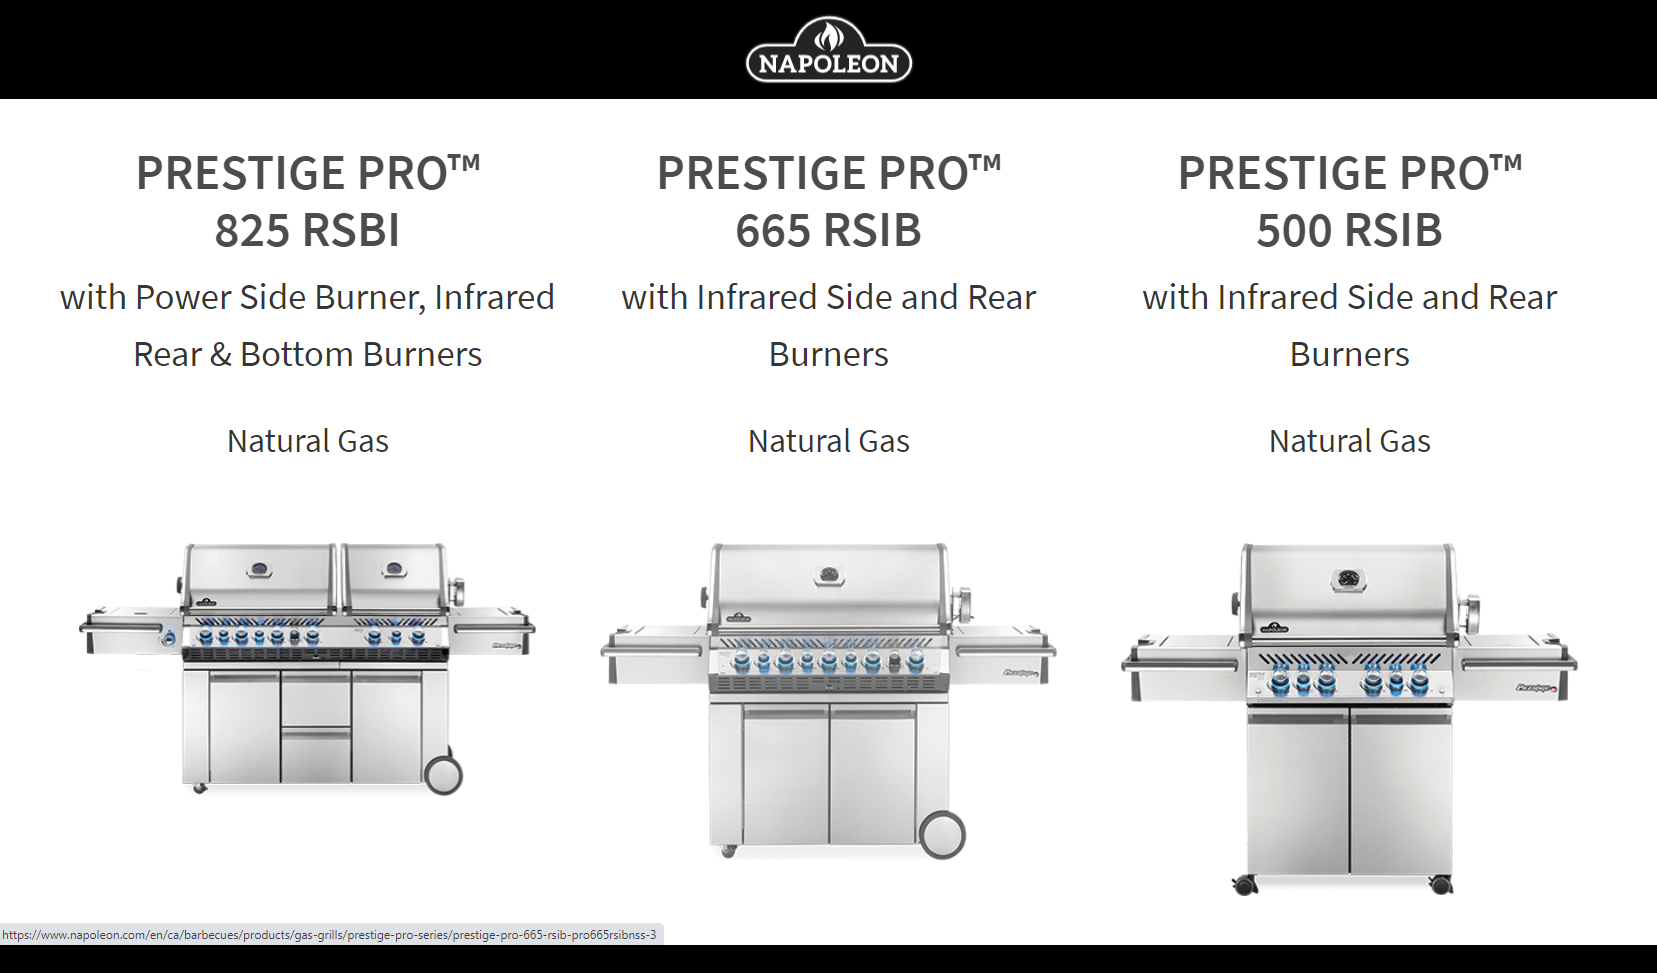 Improve Your Barbecue Experience!!! - Image 1